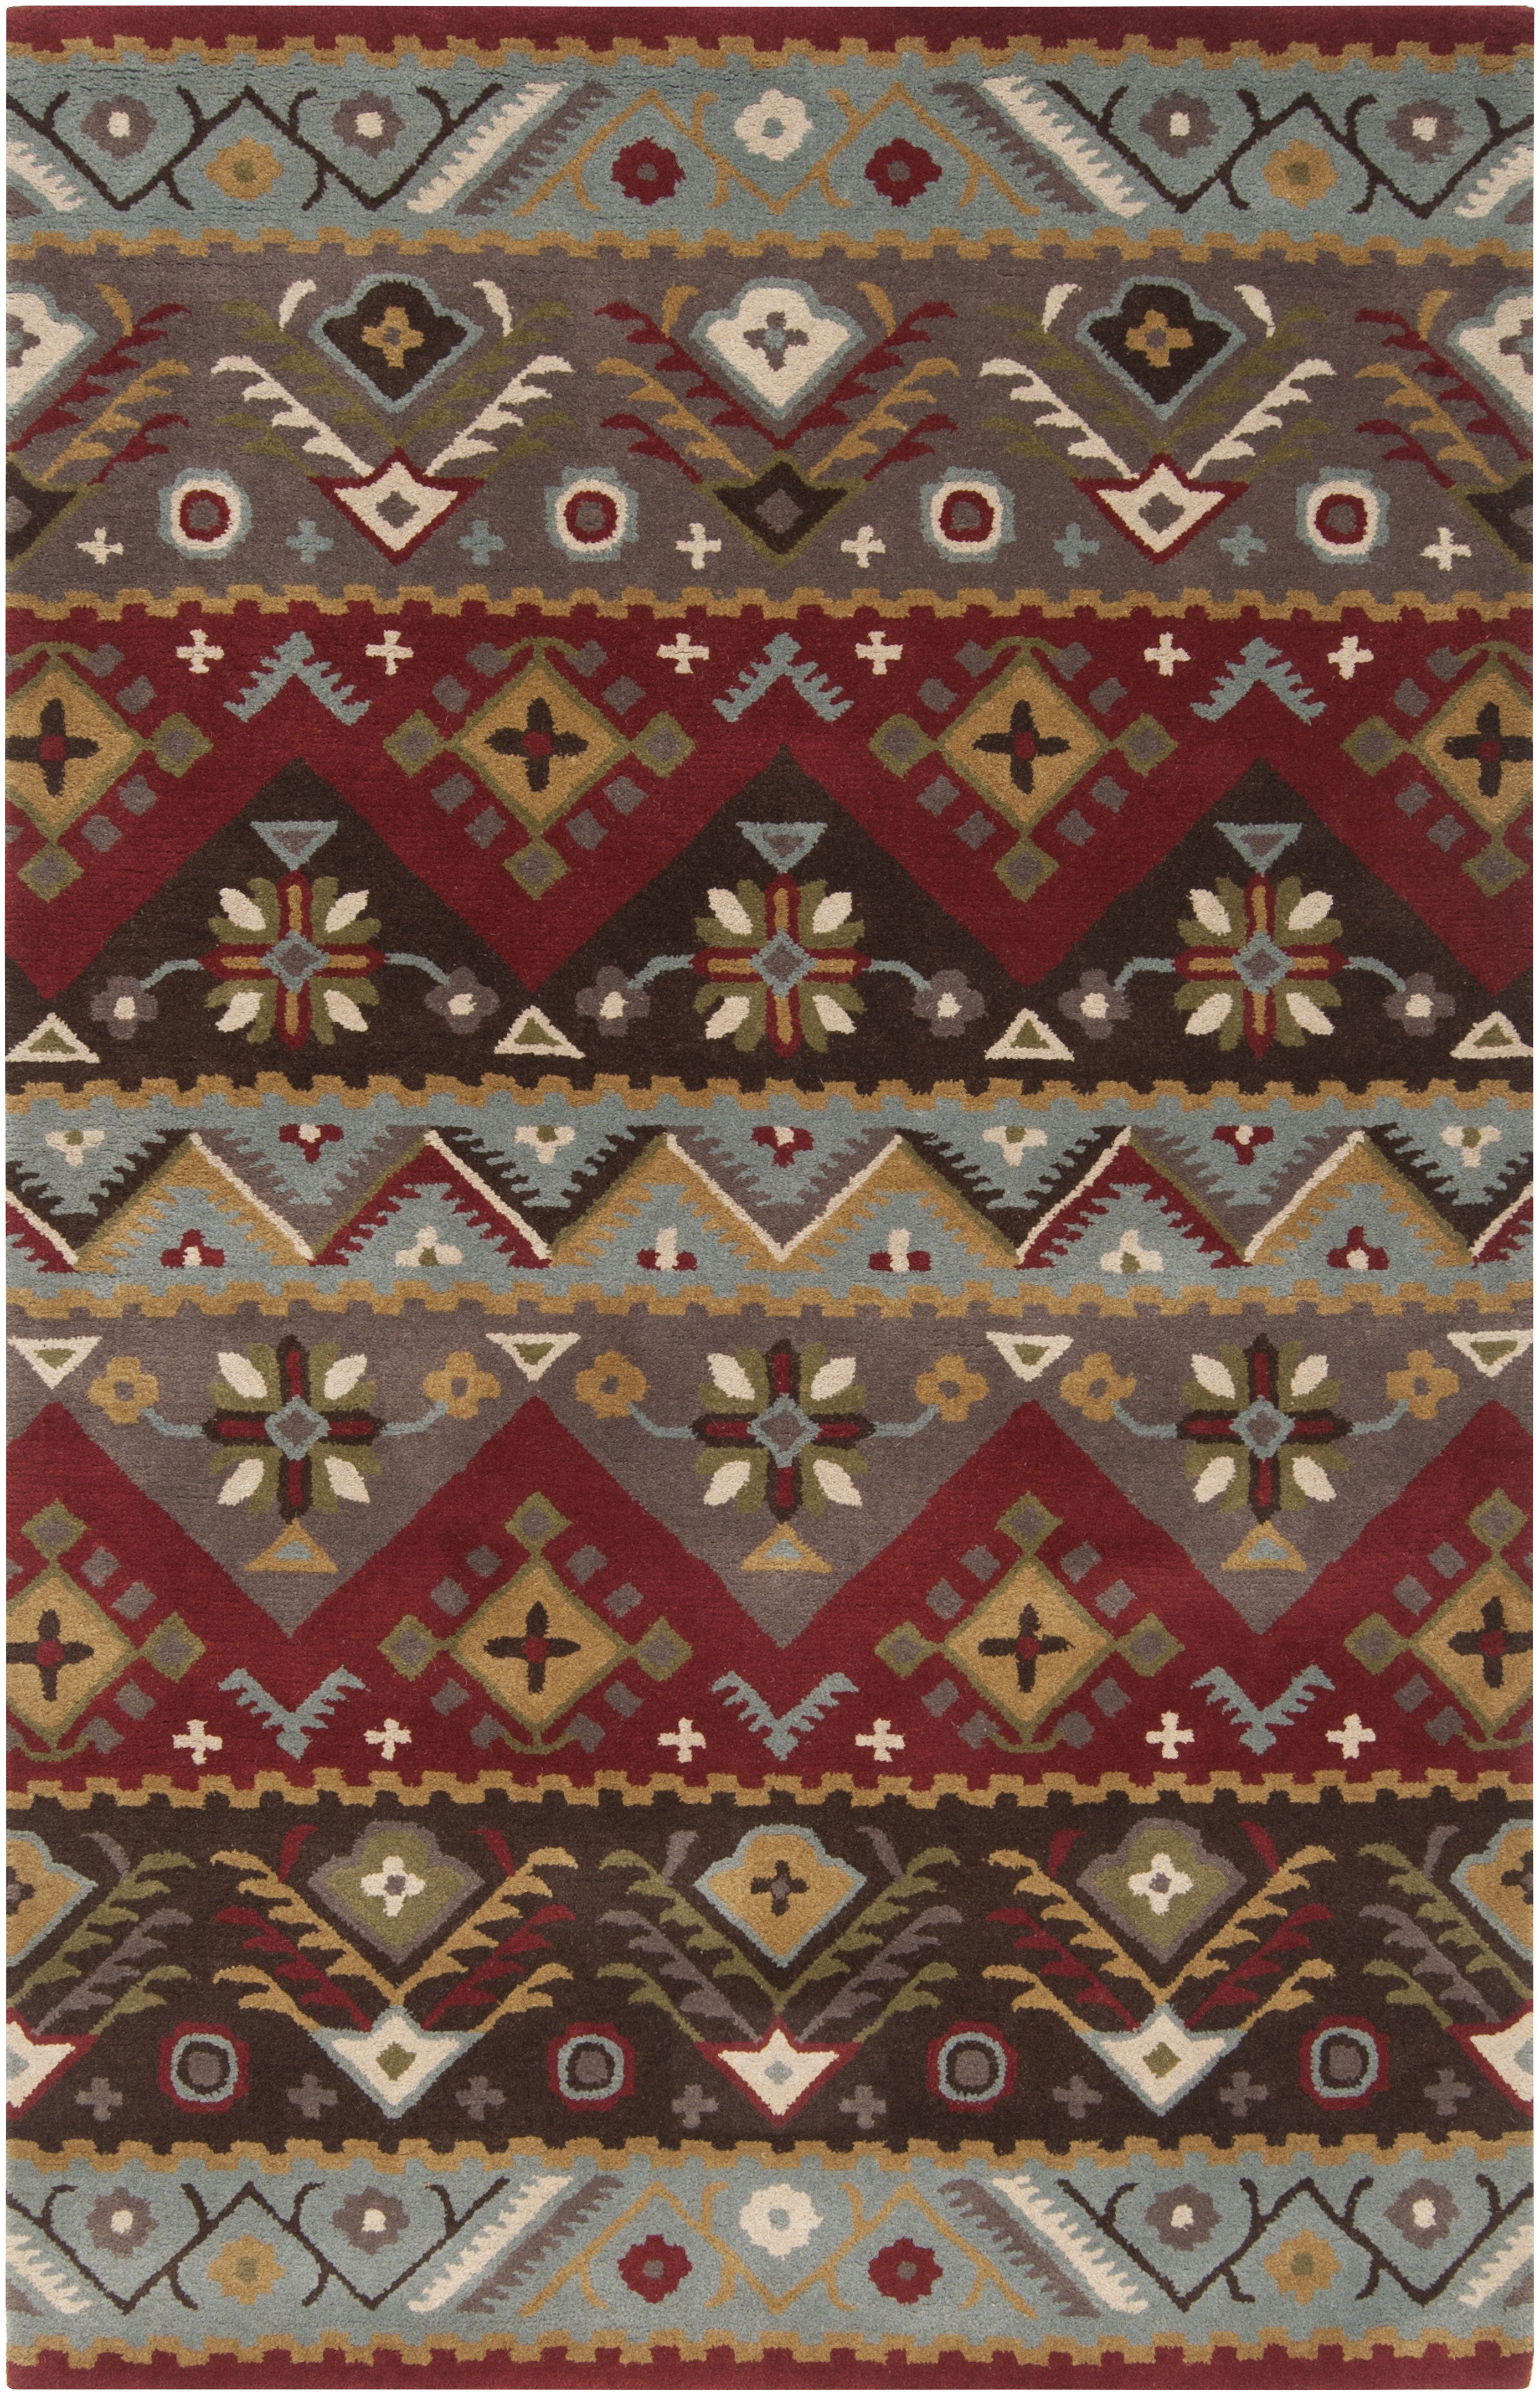 Oralia Southwestern Handmade Tufted Wool Red Gray Yellow Area Rug Area Rugs Hand Tufted Rugs Rugs